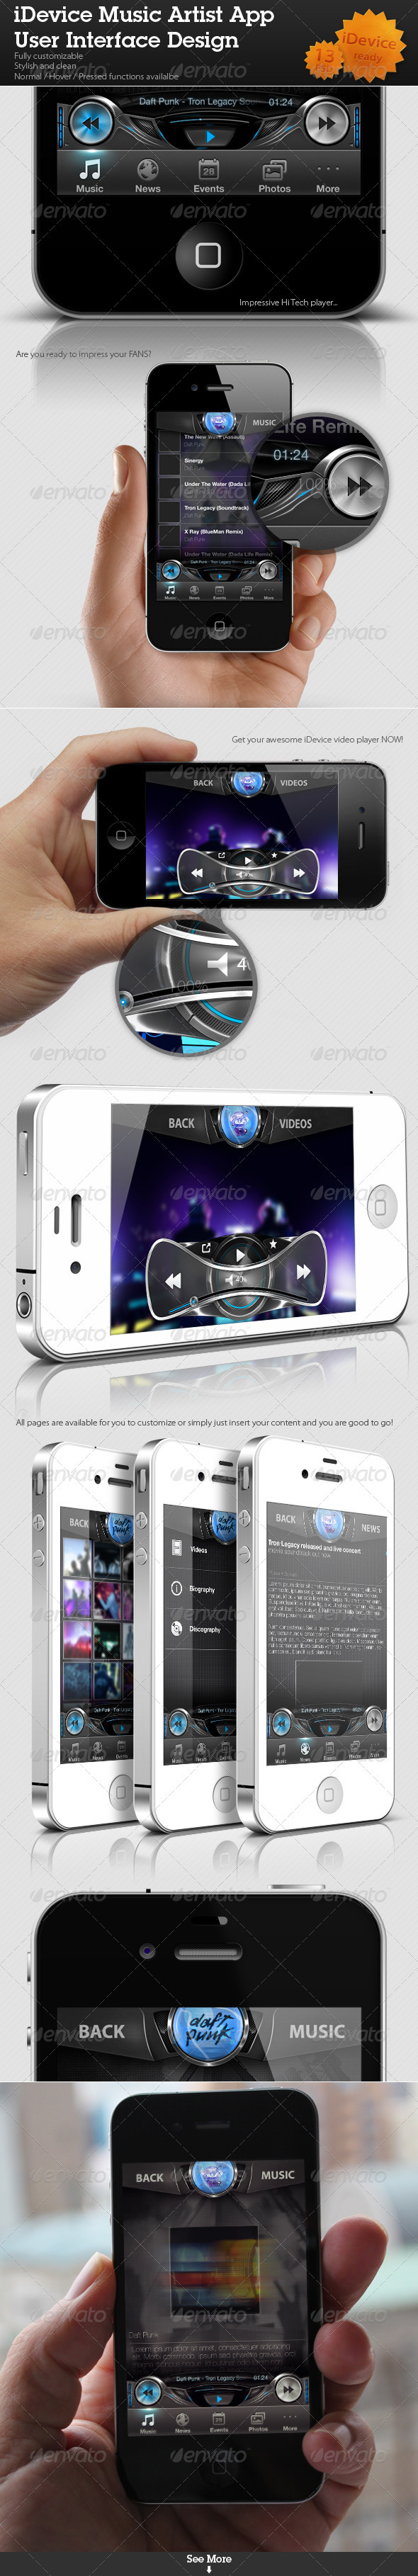 iDevice Music Artist App User Interface - User Interfaces Web Elements